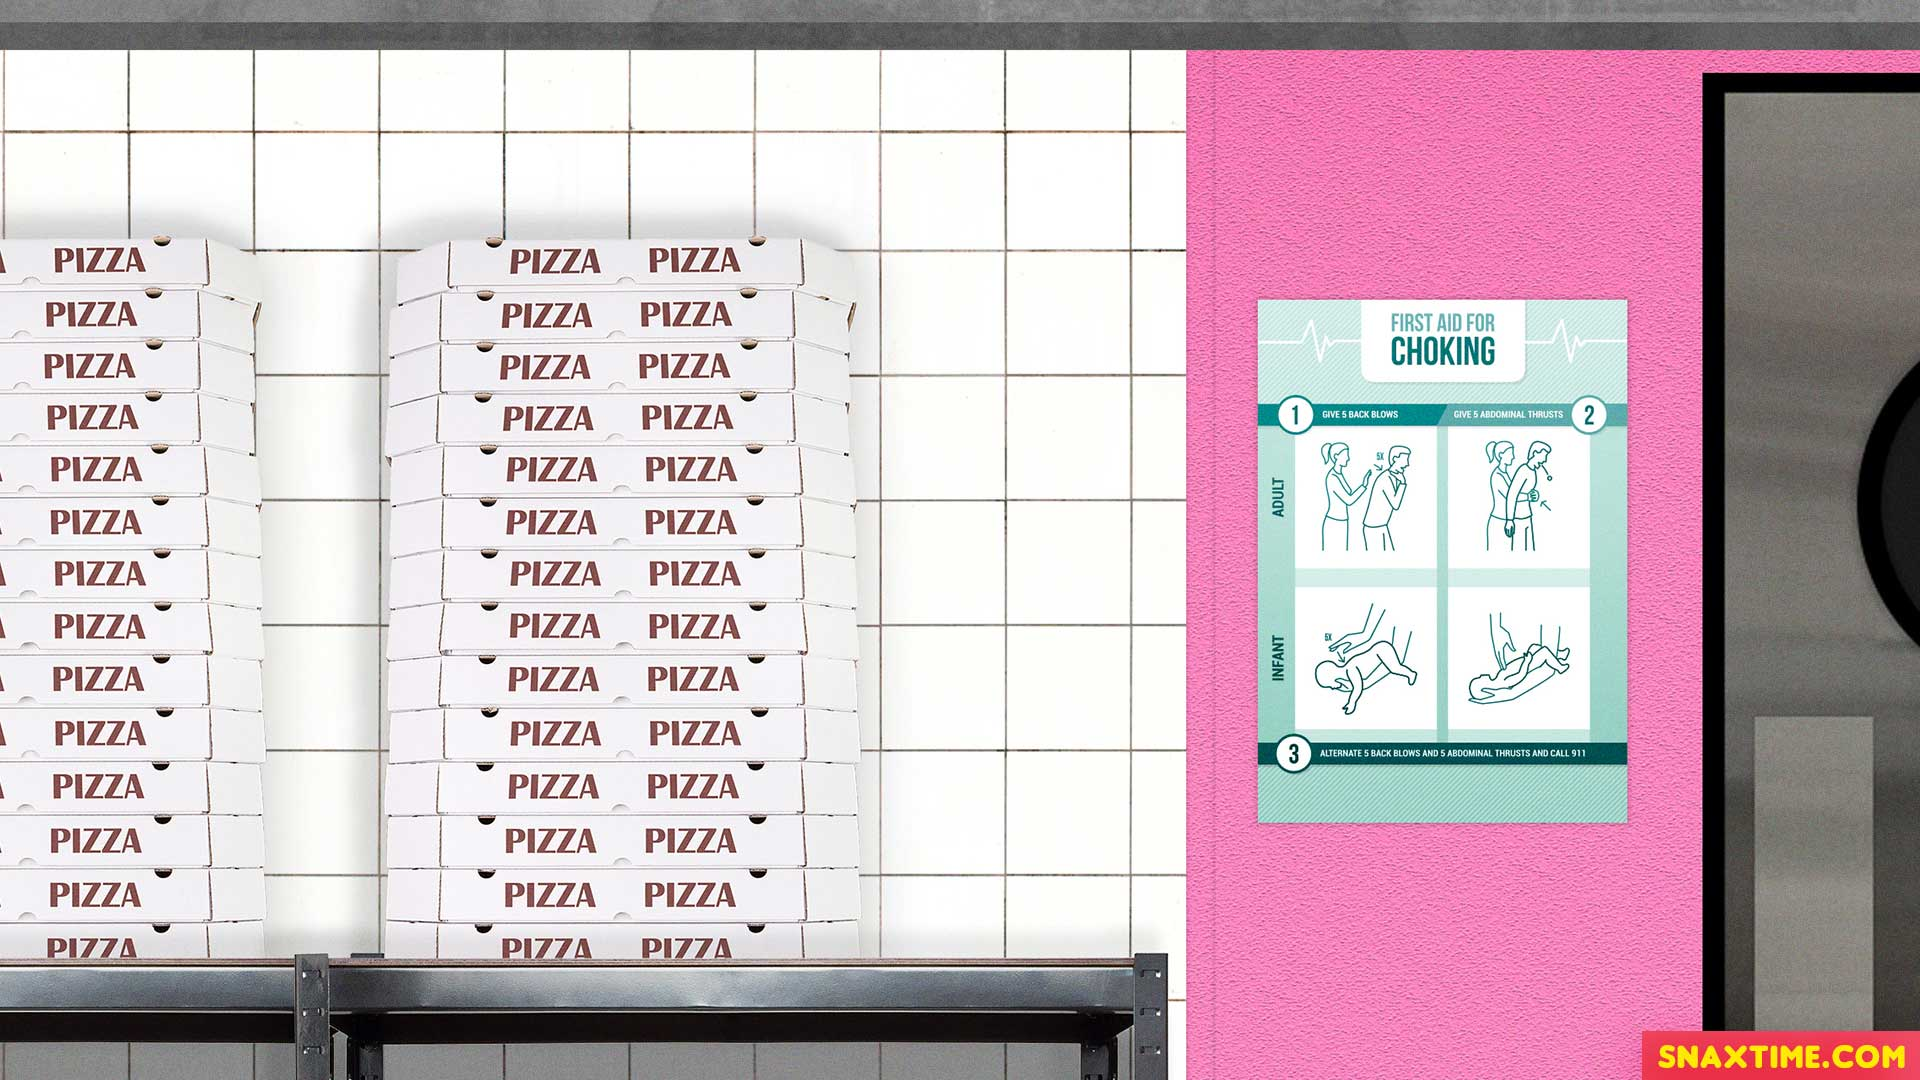 Free Zoom Background - Pizza Restaurant Delivery